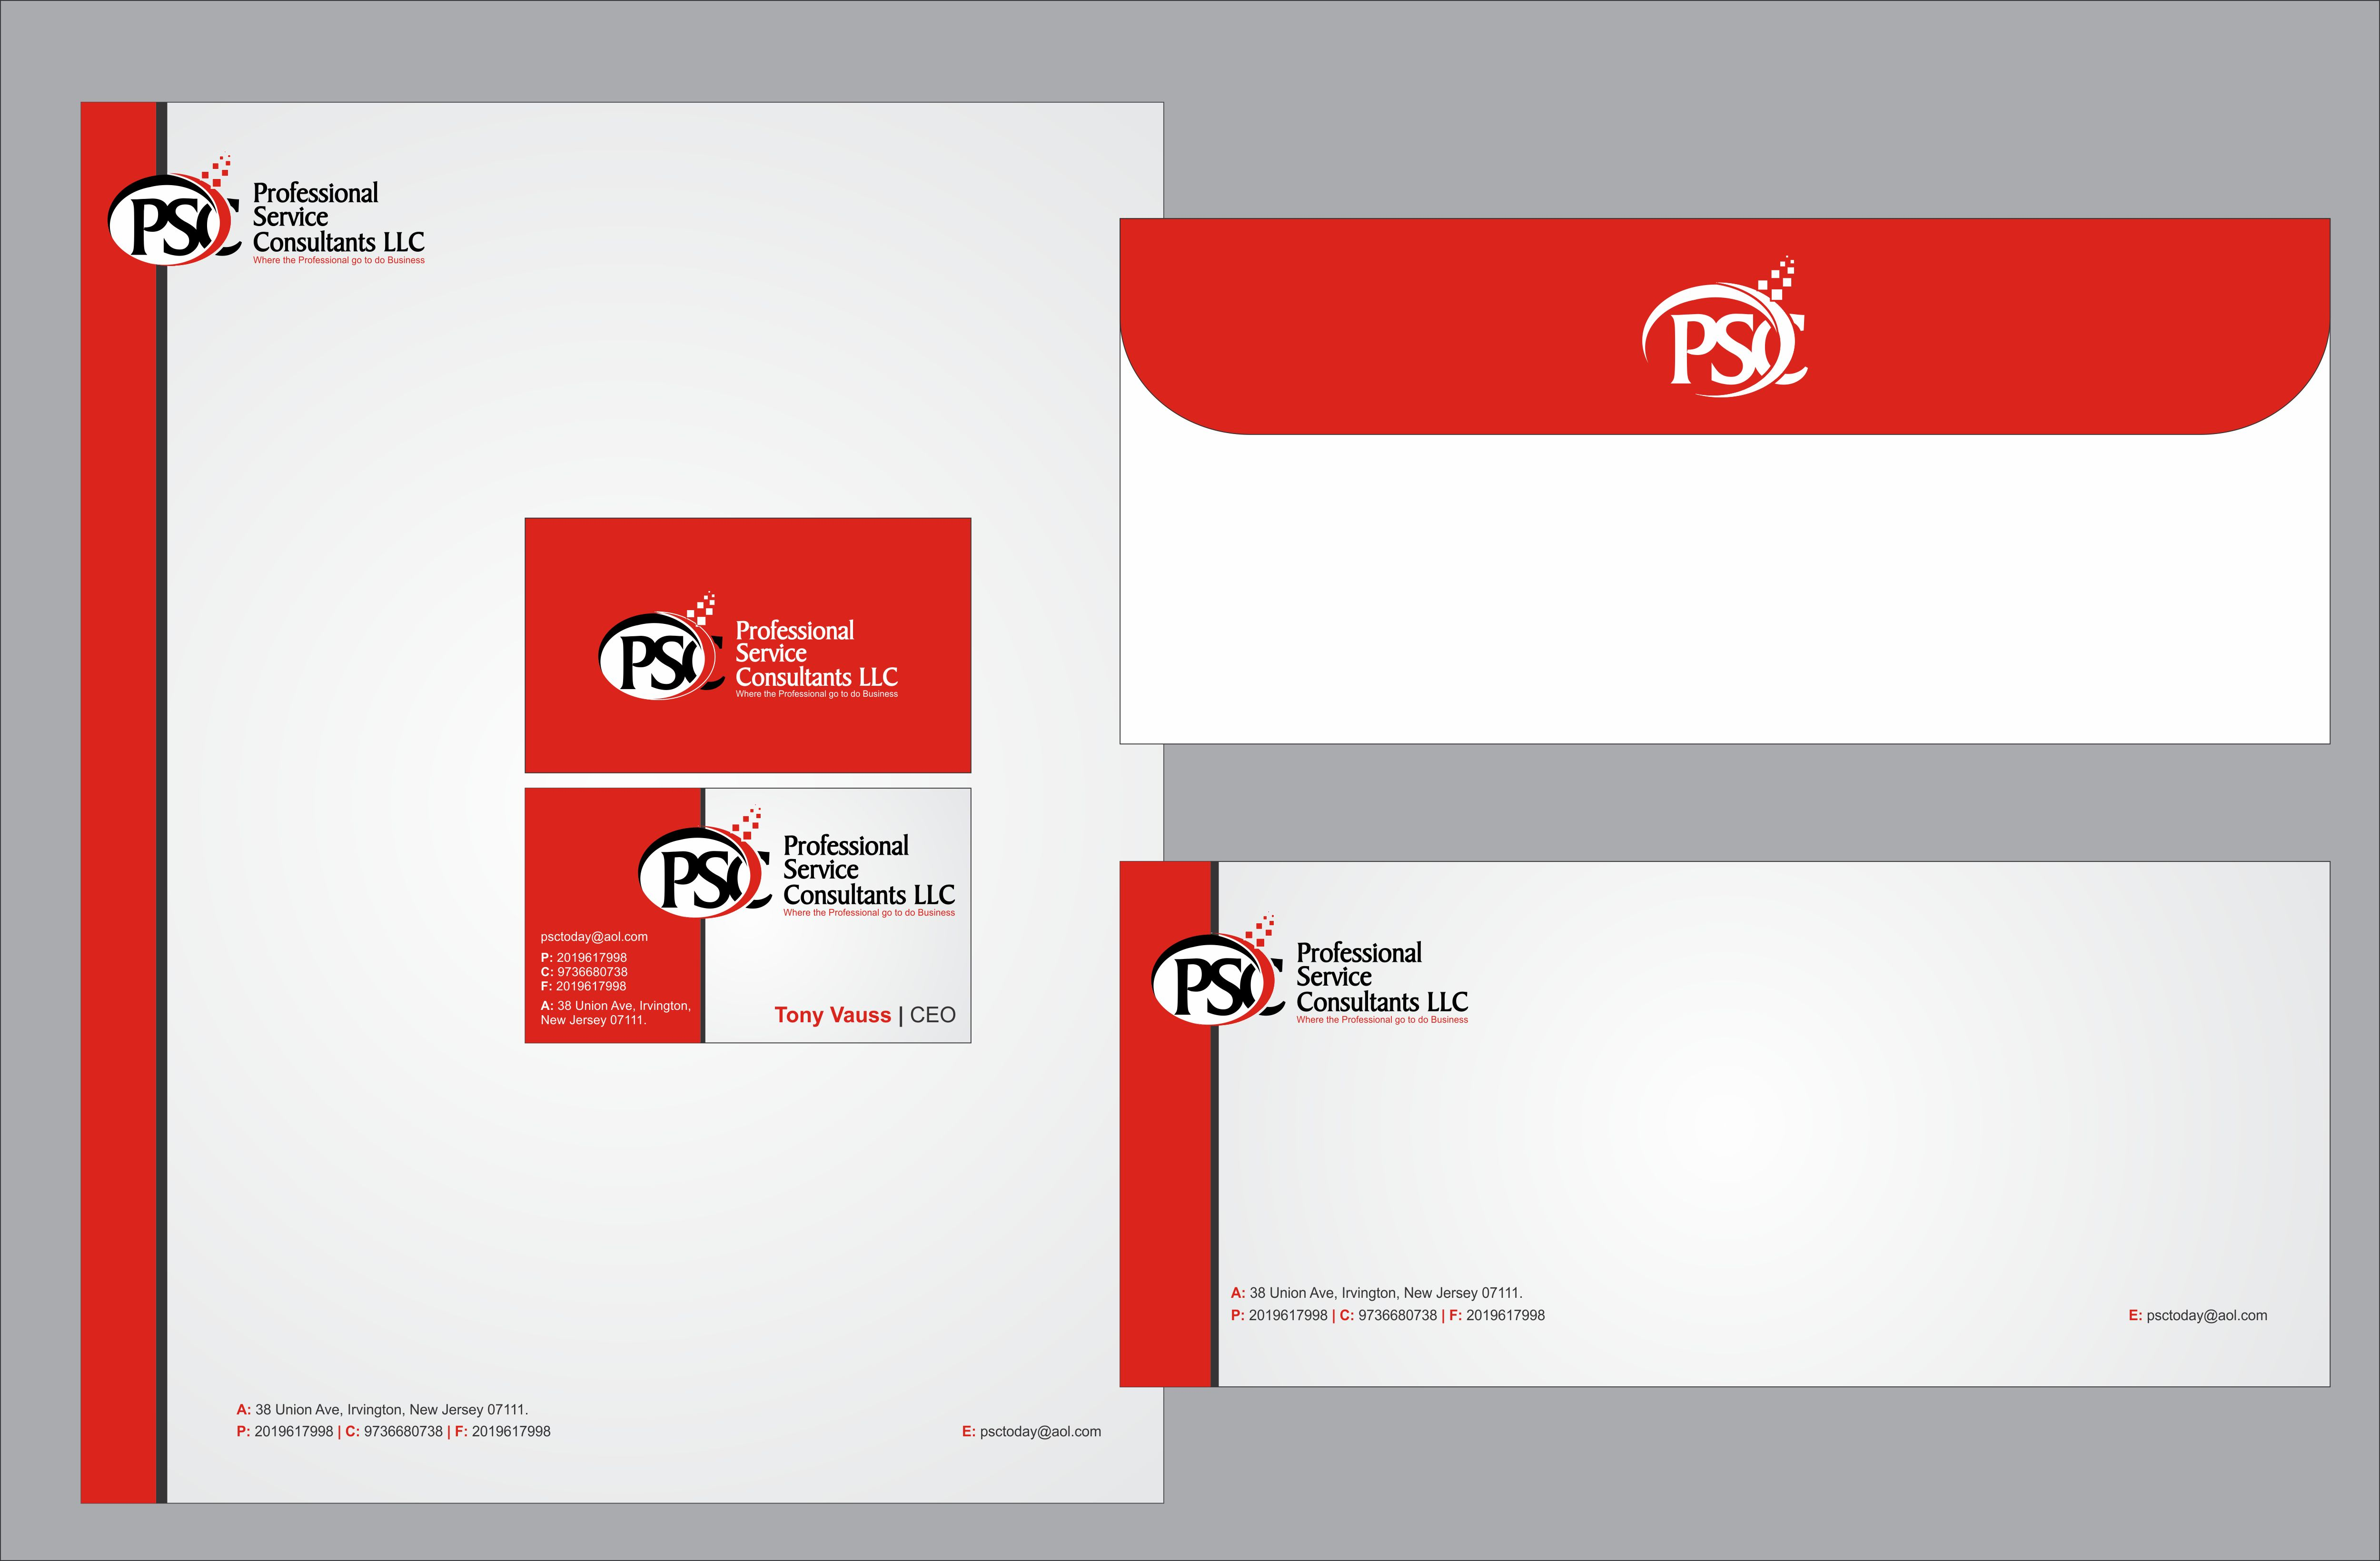 Check out this design for business cards letterhead presentation check out this design for business cards letterhead presentation folders envelopes cd cover and case t shirts by mycroburst colourmoves Gallery